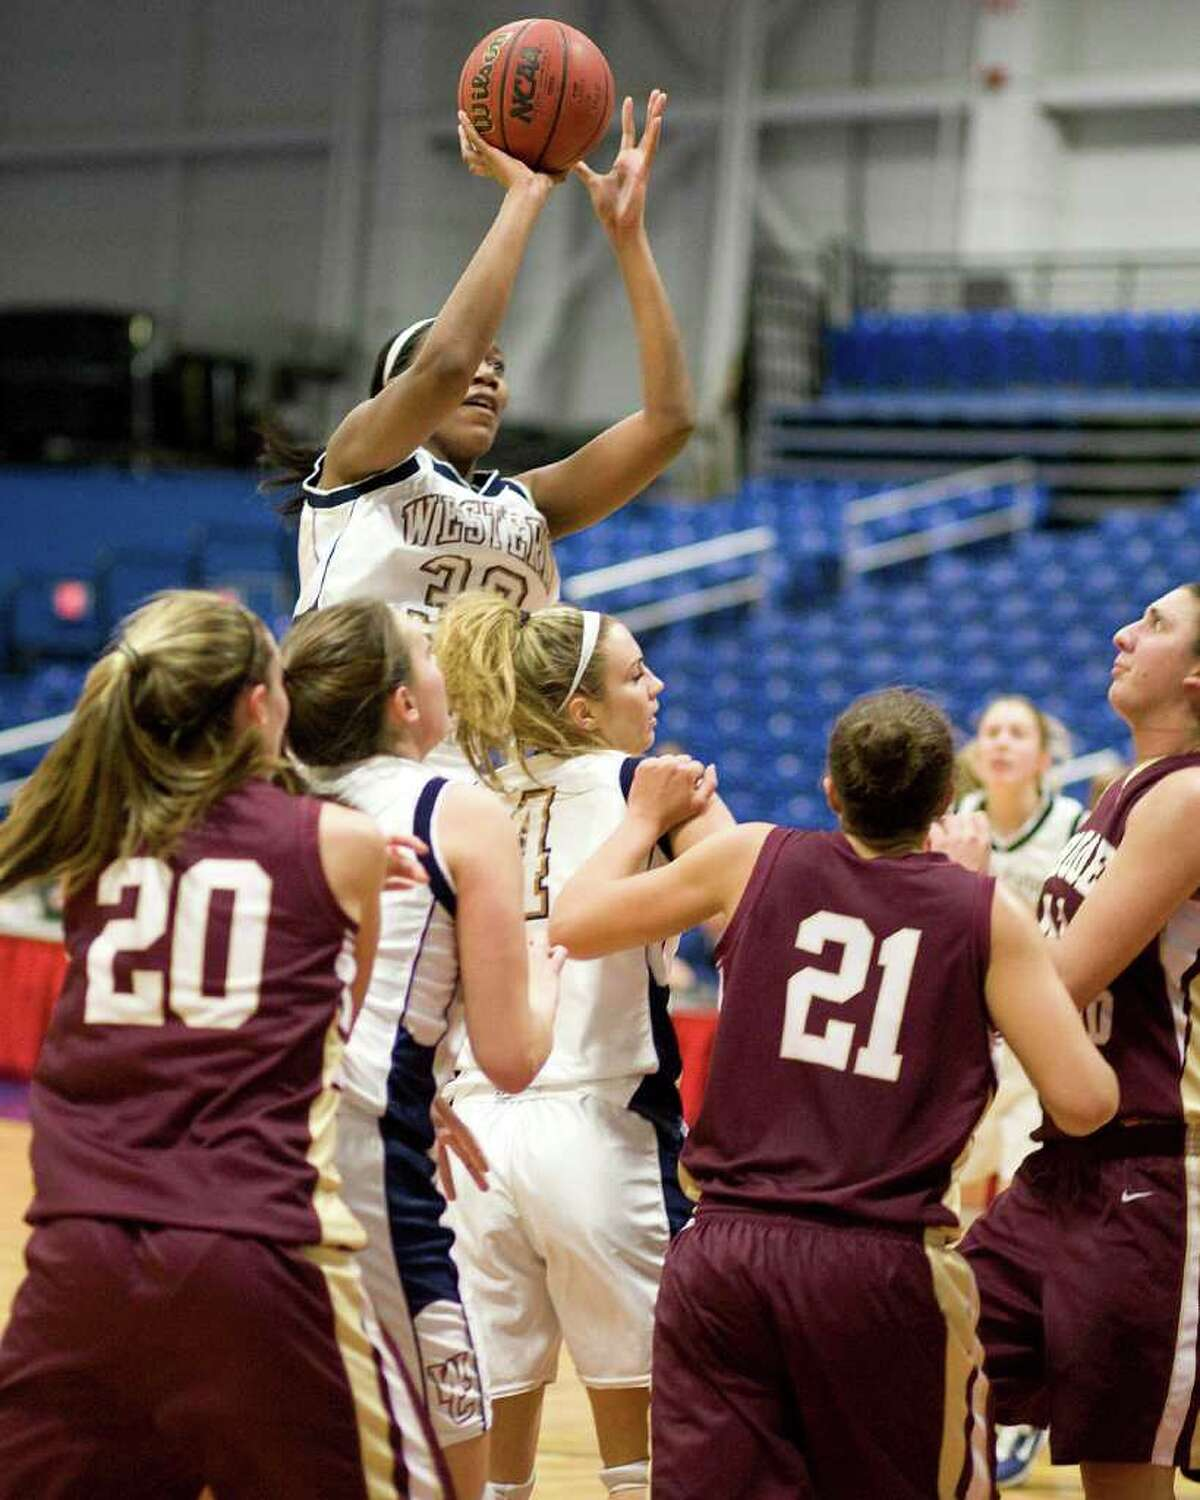 WCSU's Melissa Teel elevates for a jump shot against Rhode Island College Tuesday night at the Feldman Arena.